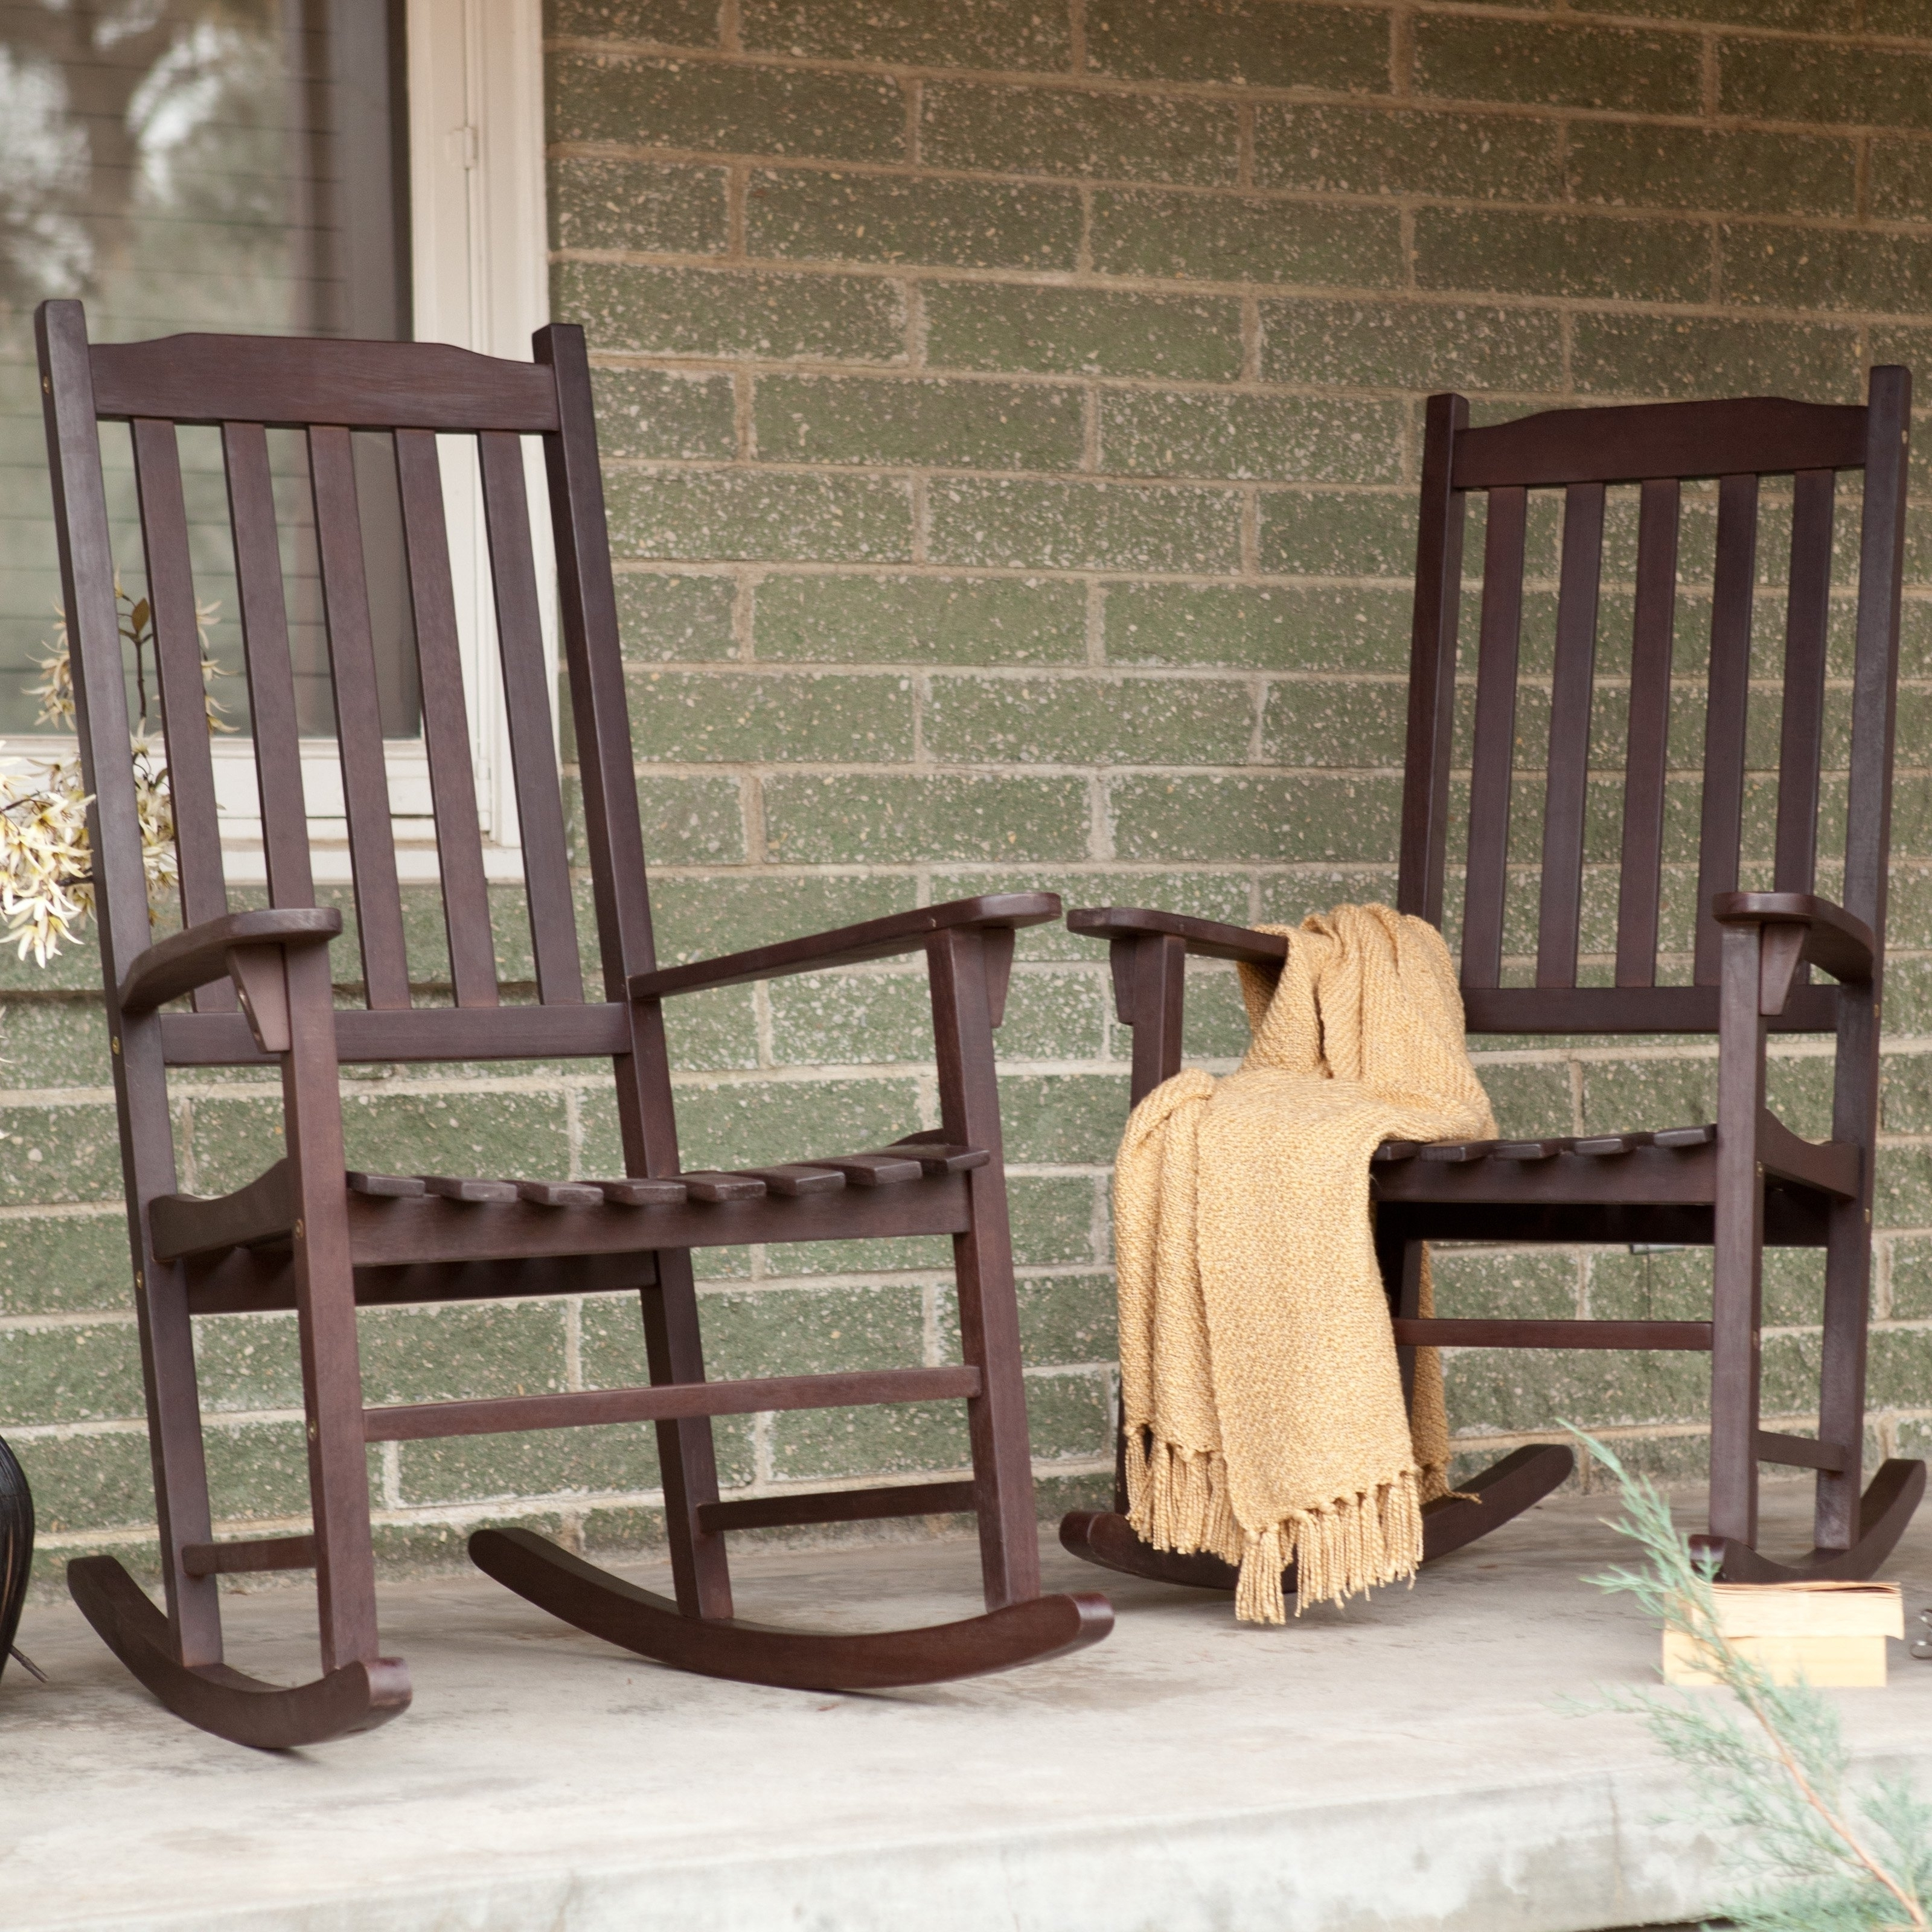 Preferred Outside Rocking Chair Sets In Belham Living Richmond Rocking Chairs Set Of 2 Outdoor Rocking (View 2 of 15)